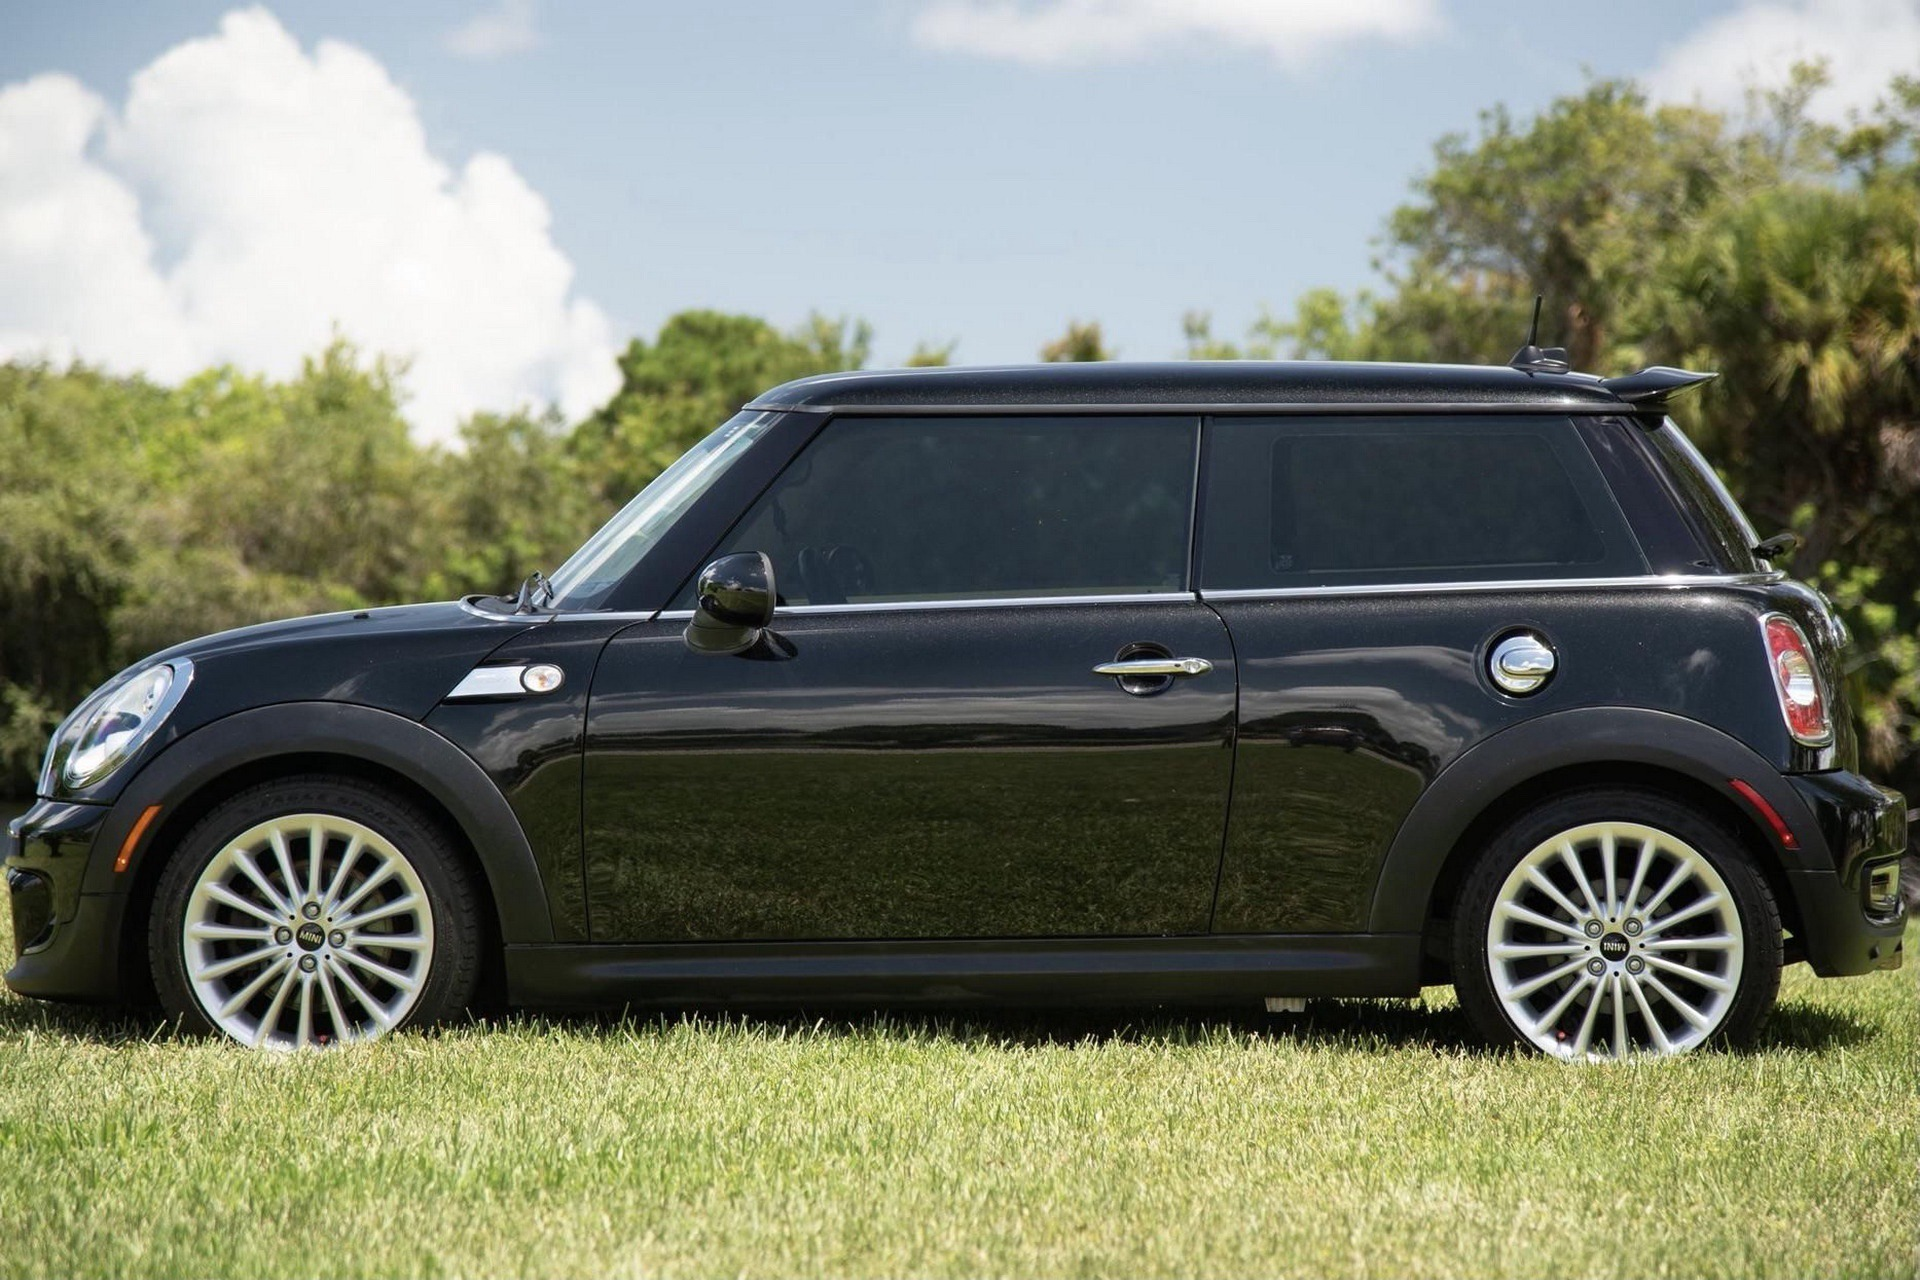 Mini_Cooper_S_Inspired_by_Goodwood-0023